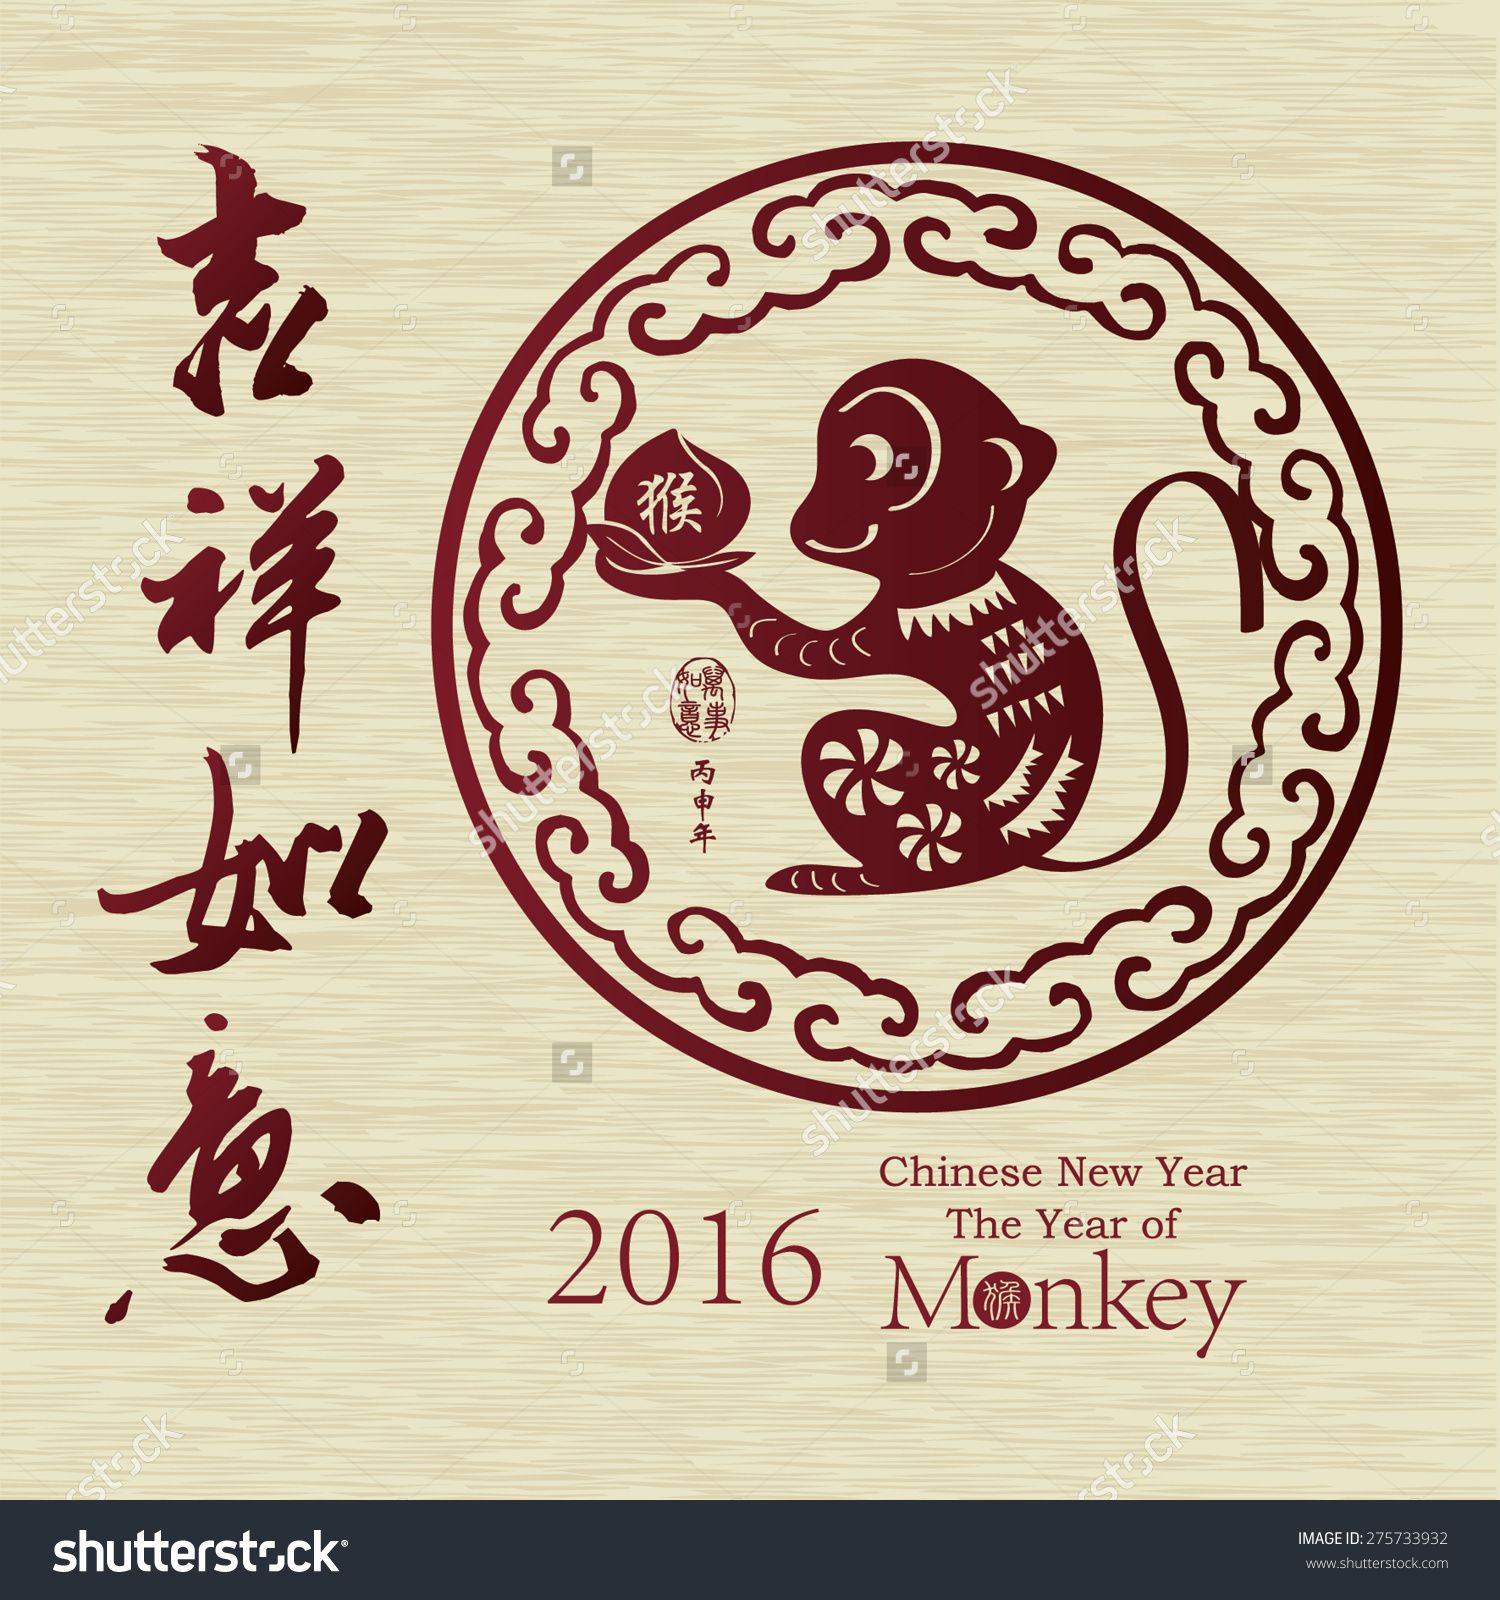 Stock Vector Chinese New Year Greeting Card Design Chinese Year Of